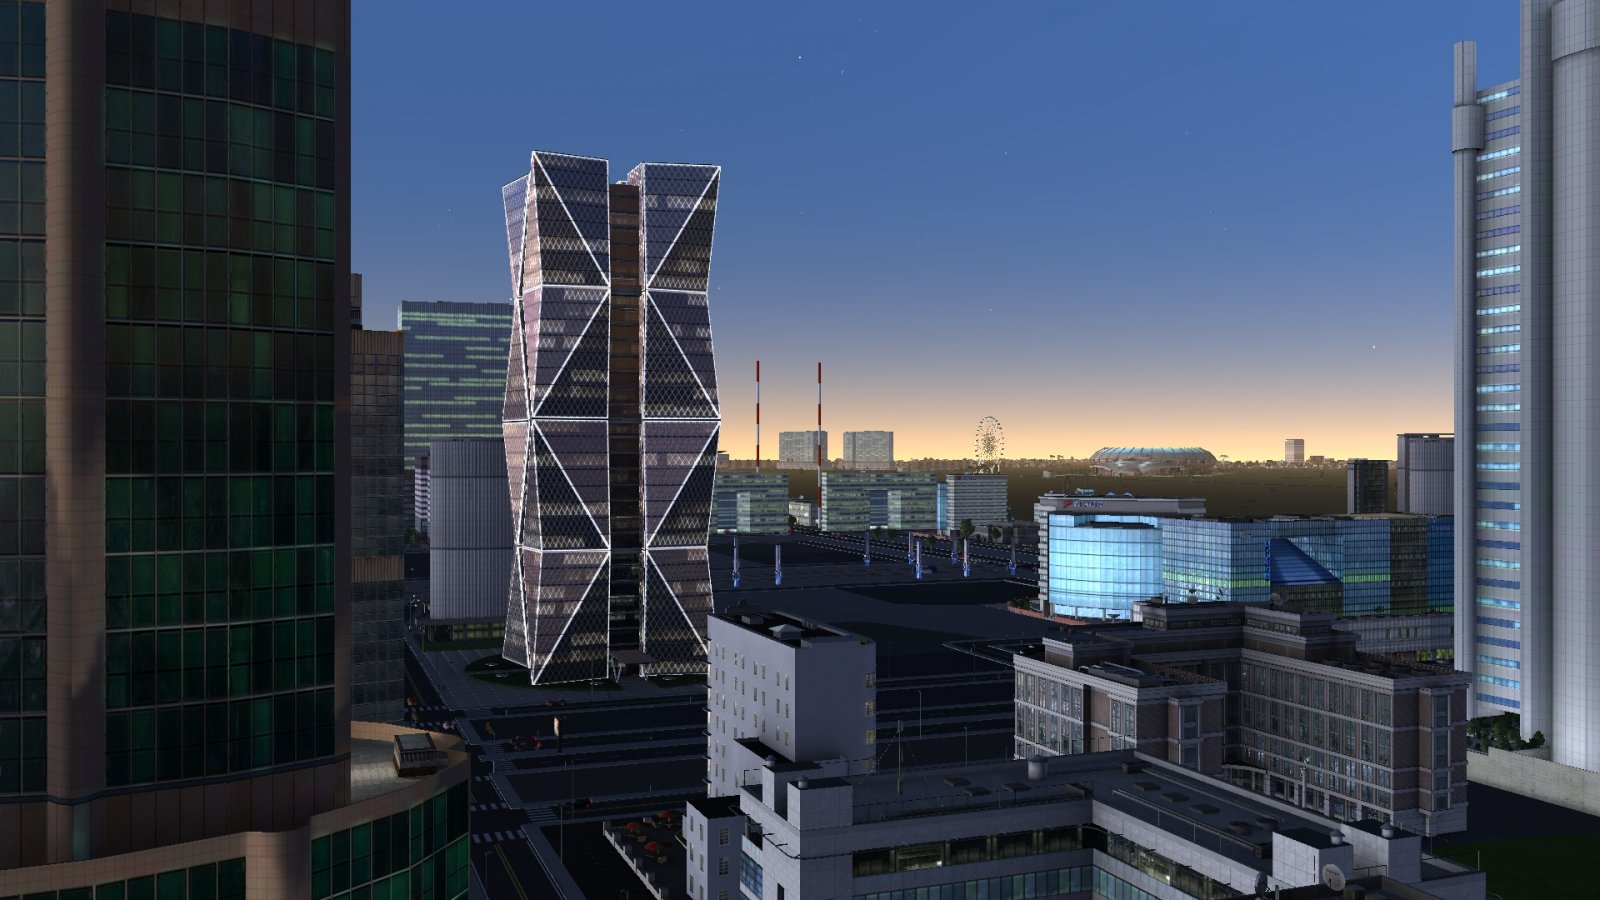 cxl_screenshot_la defense_2.jpg